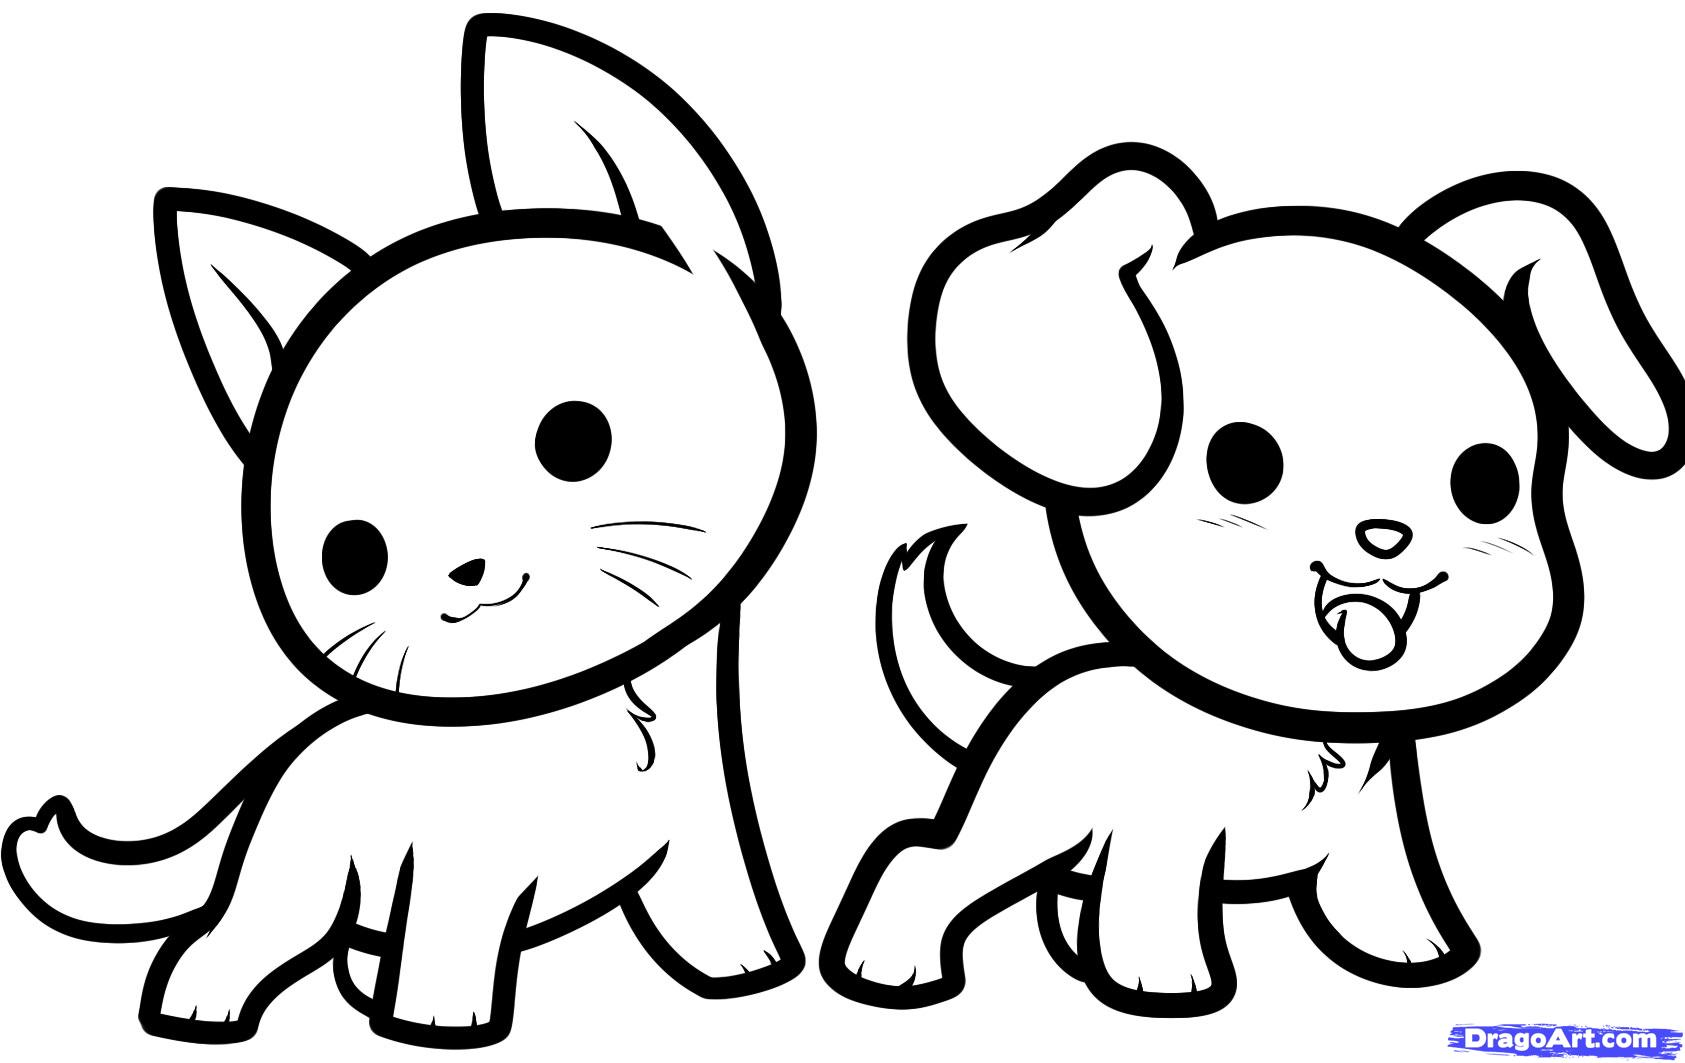 Easy Drawing Ideas For Beginners Step By Step Animals